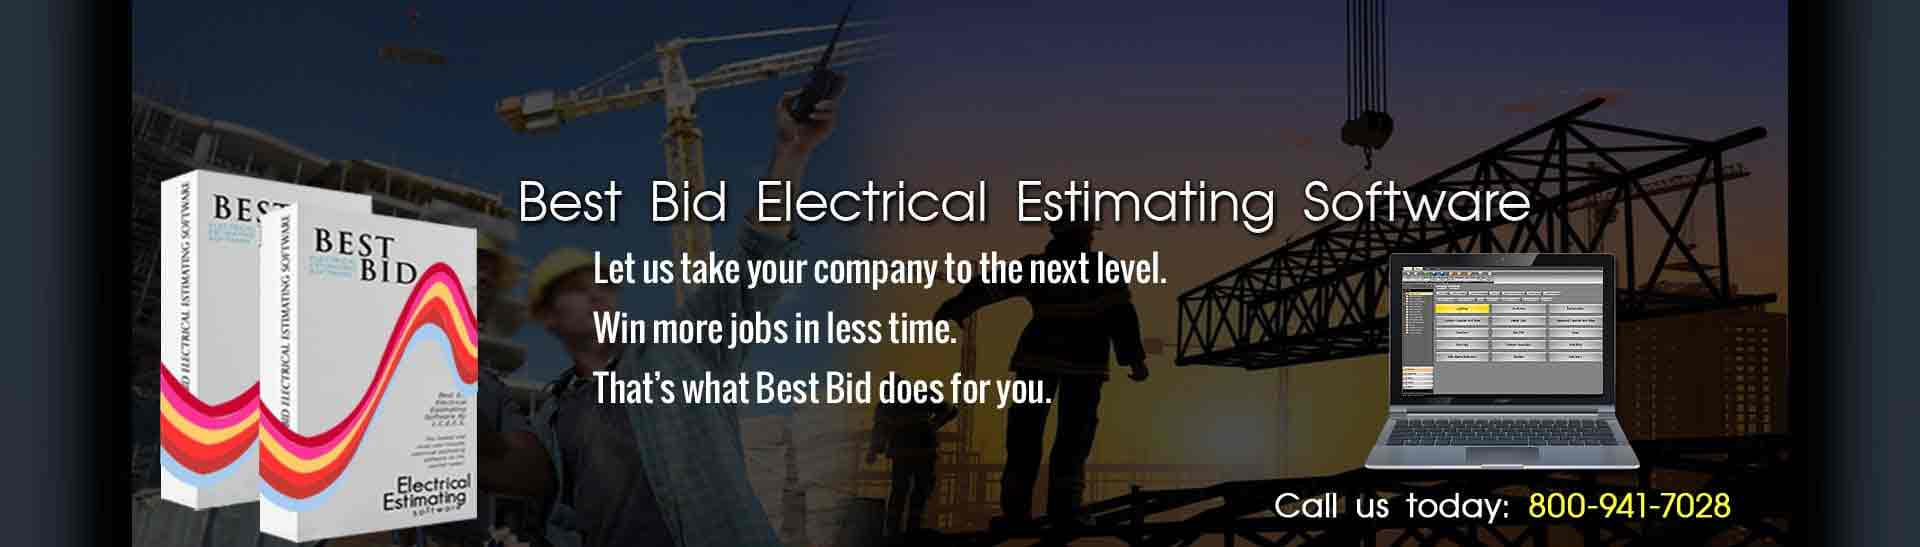 bestbid-electrical-estimating-software